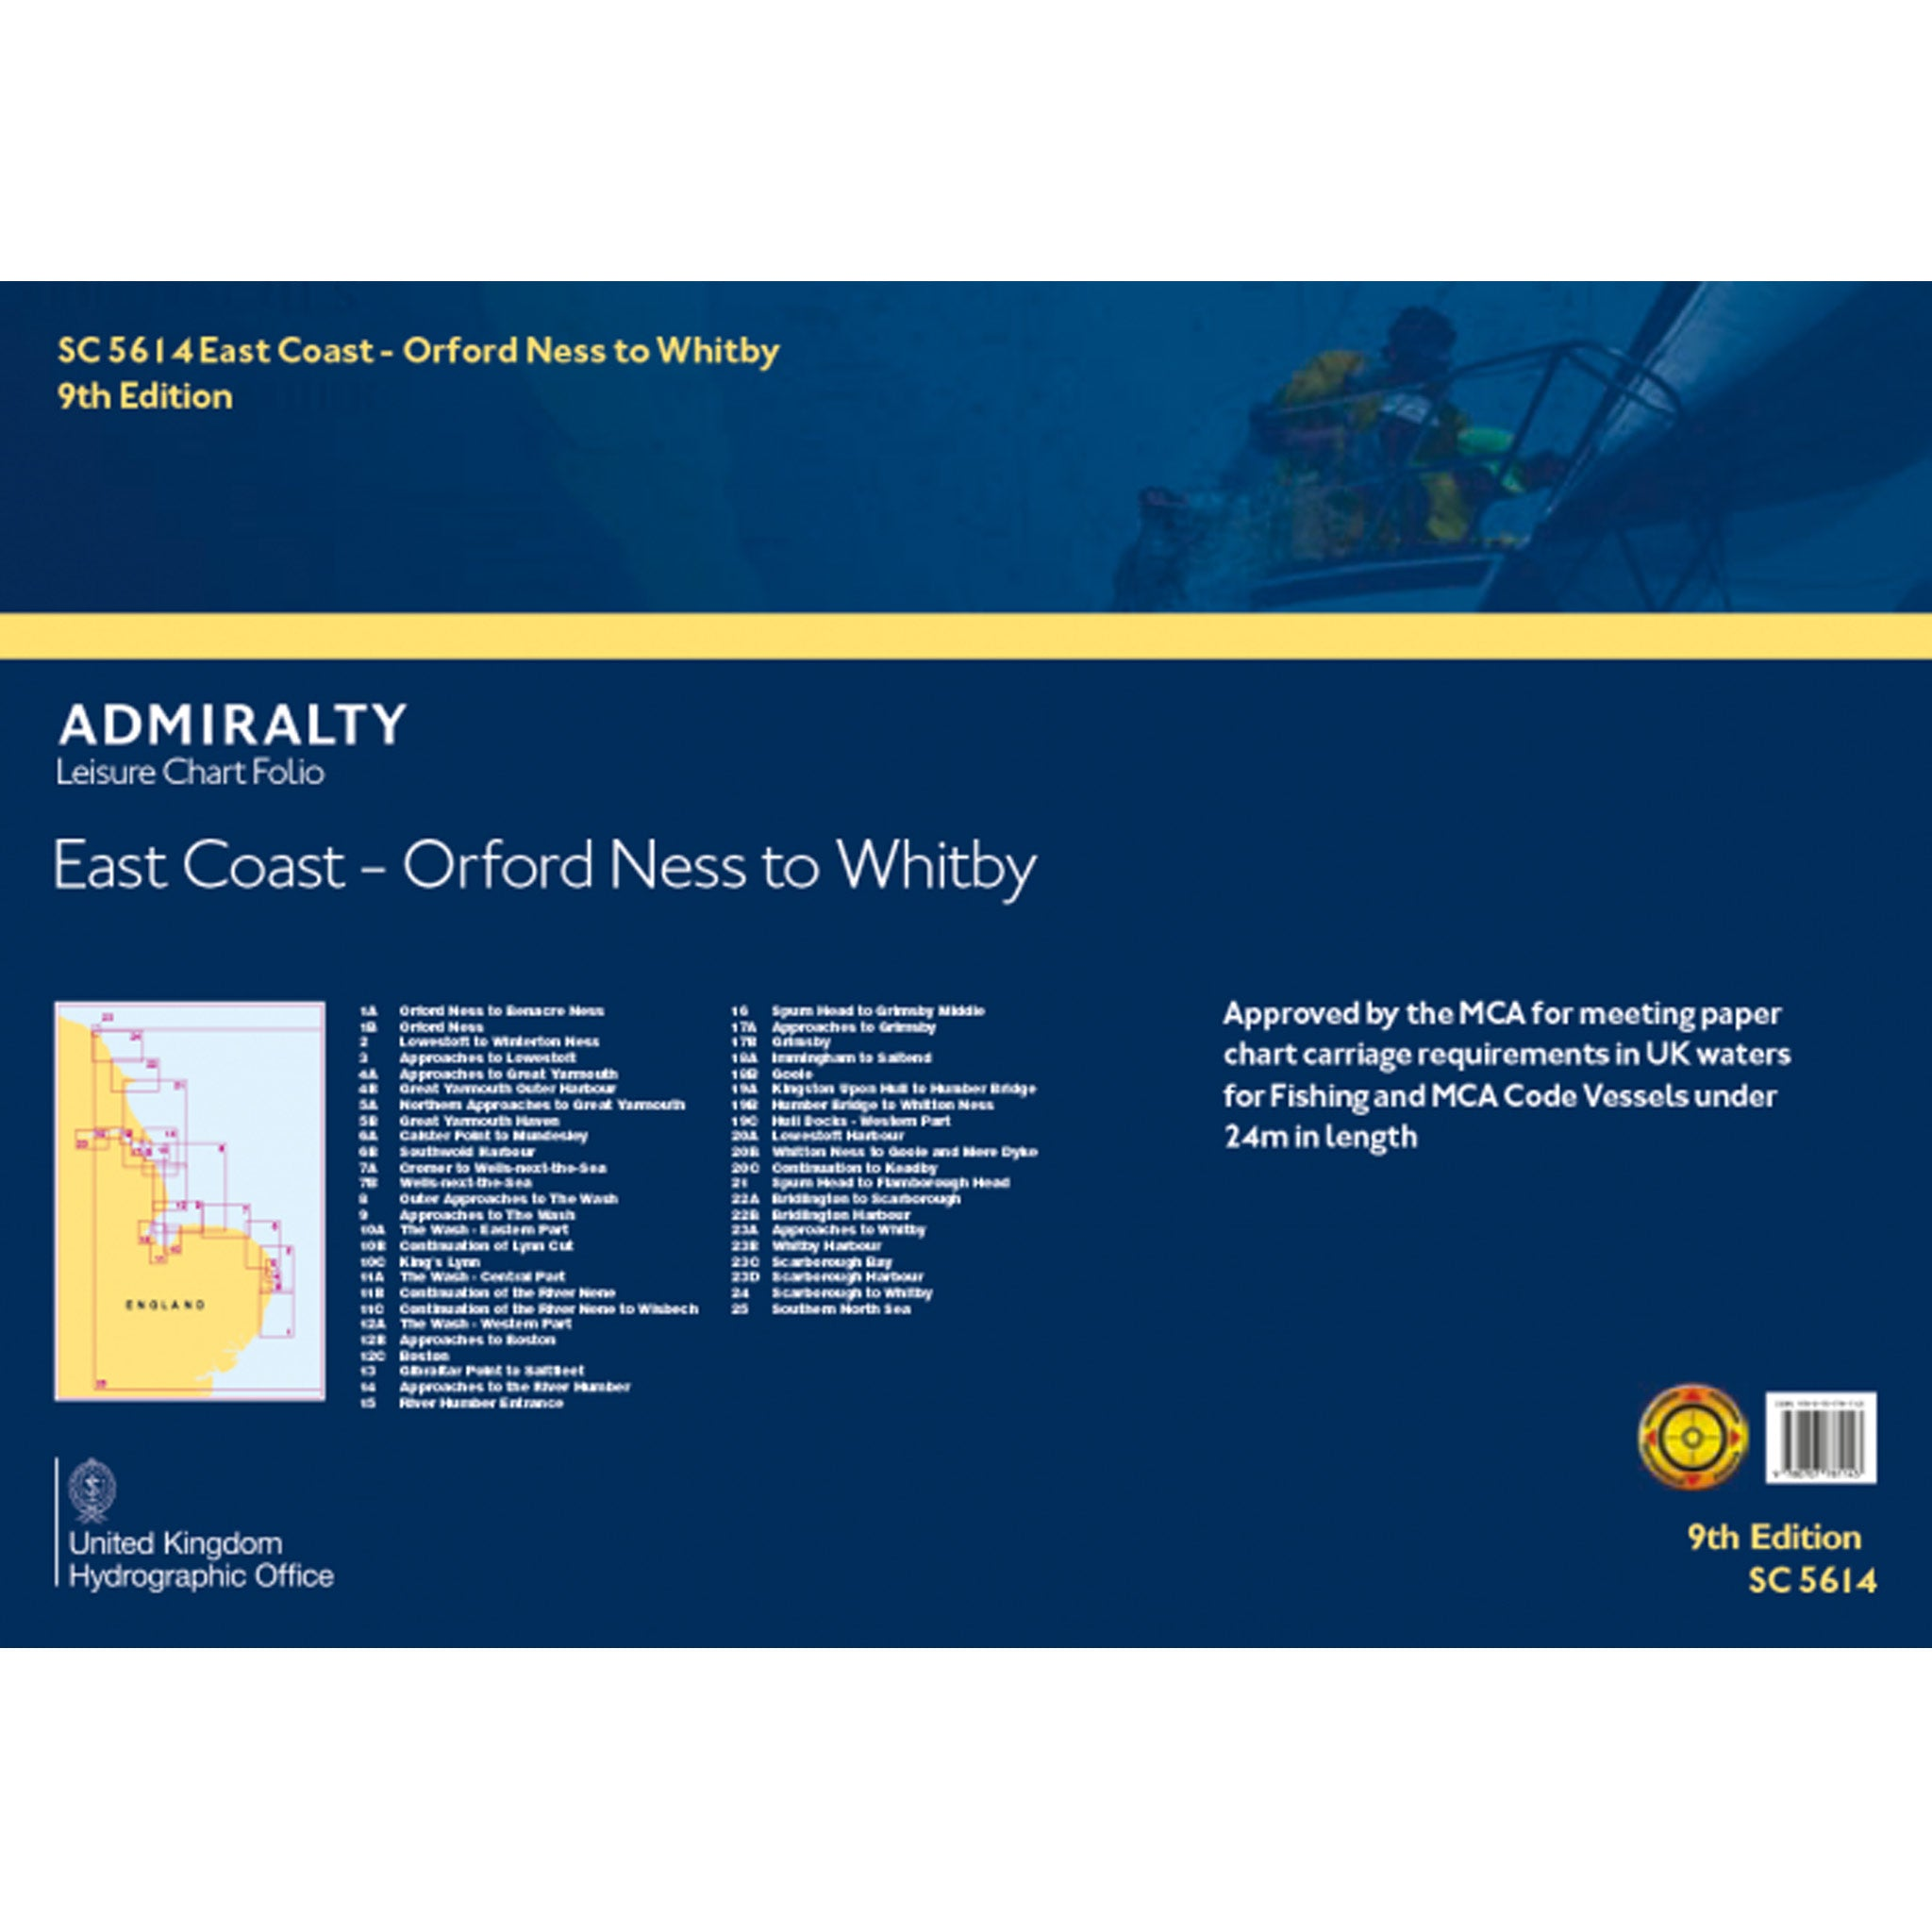 Admiralty Small Craft Folio SC5614 England - East Coast  - Orford Ness to Whitby